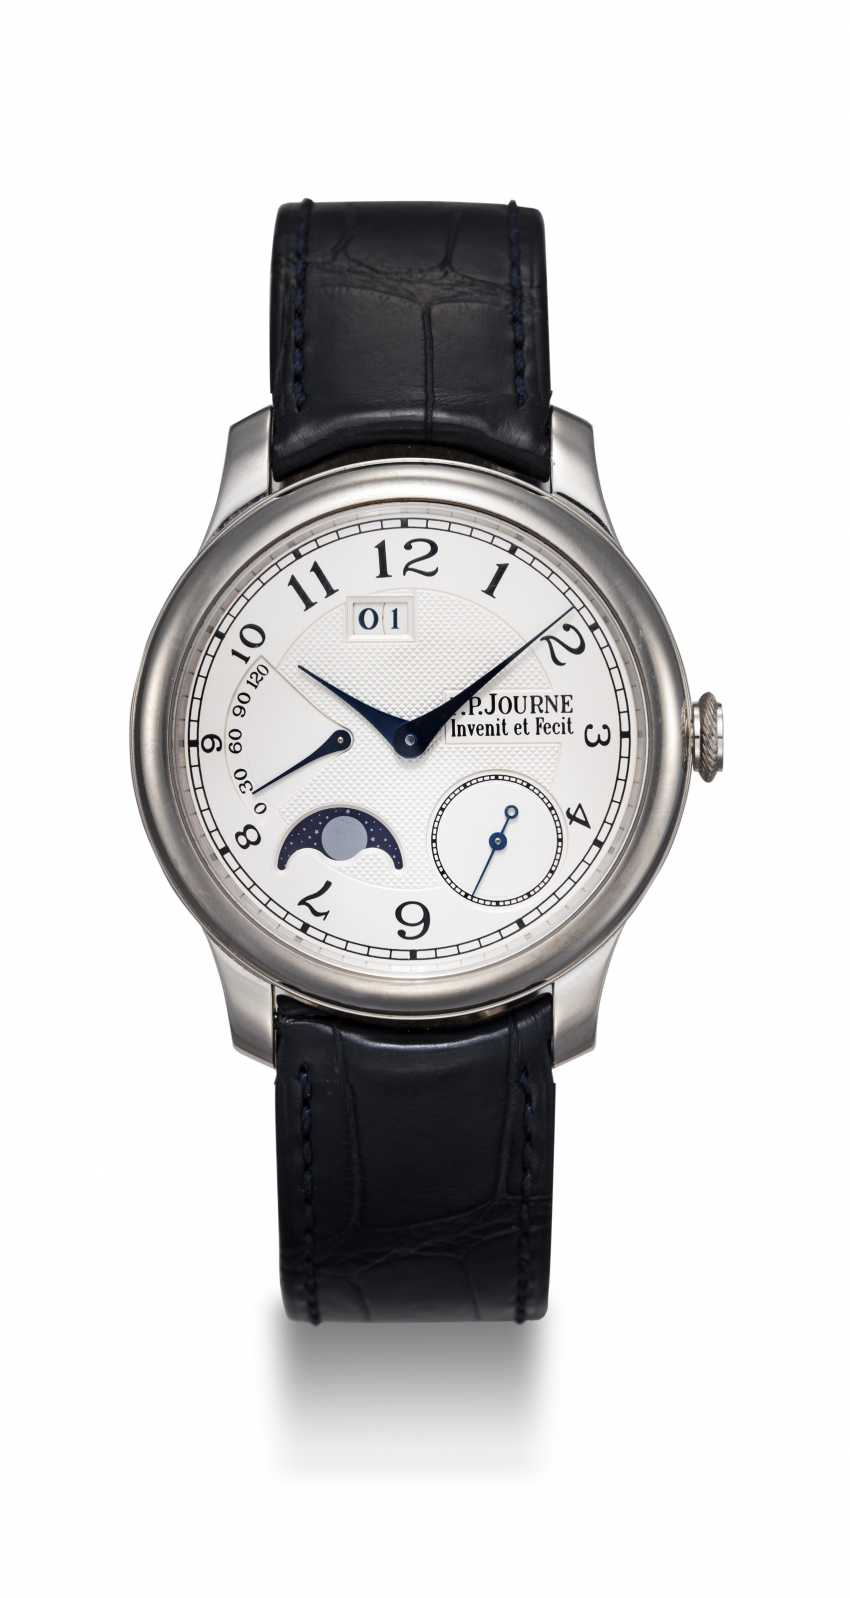 F. P. JOURNE, A PLATINUM WRISTWATCH WITH POWER RESERVE AND MOON-PHASE, OCTA AUTOMATIQUE LUNE - photo 3